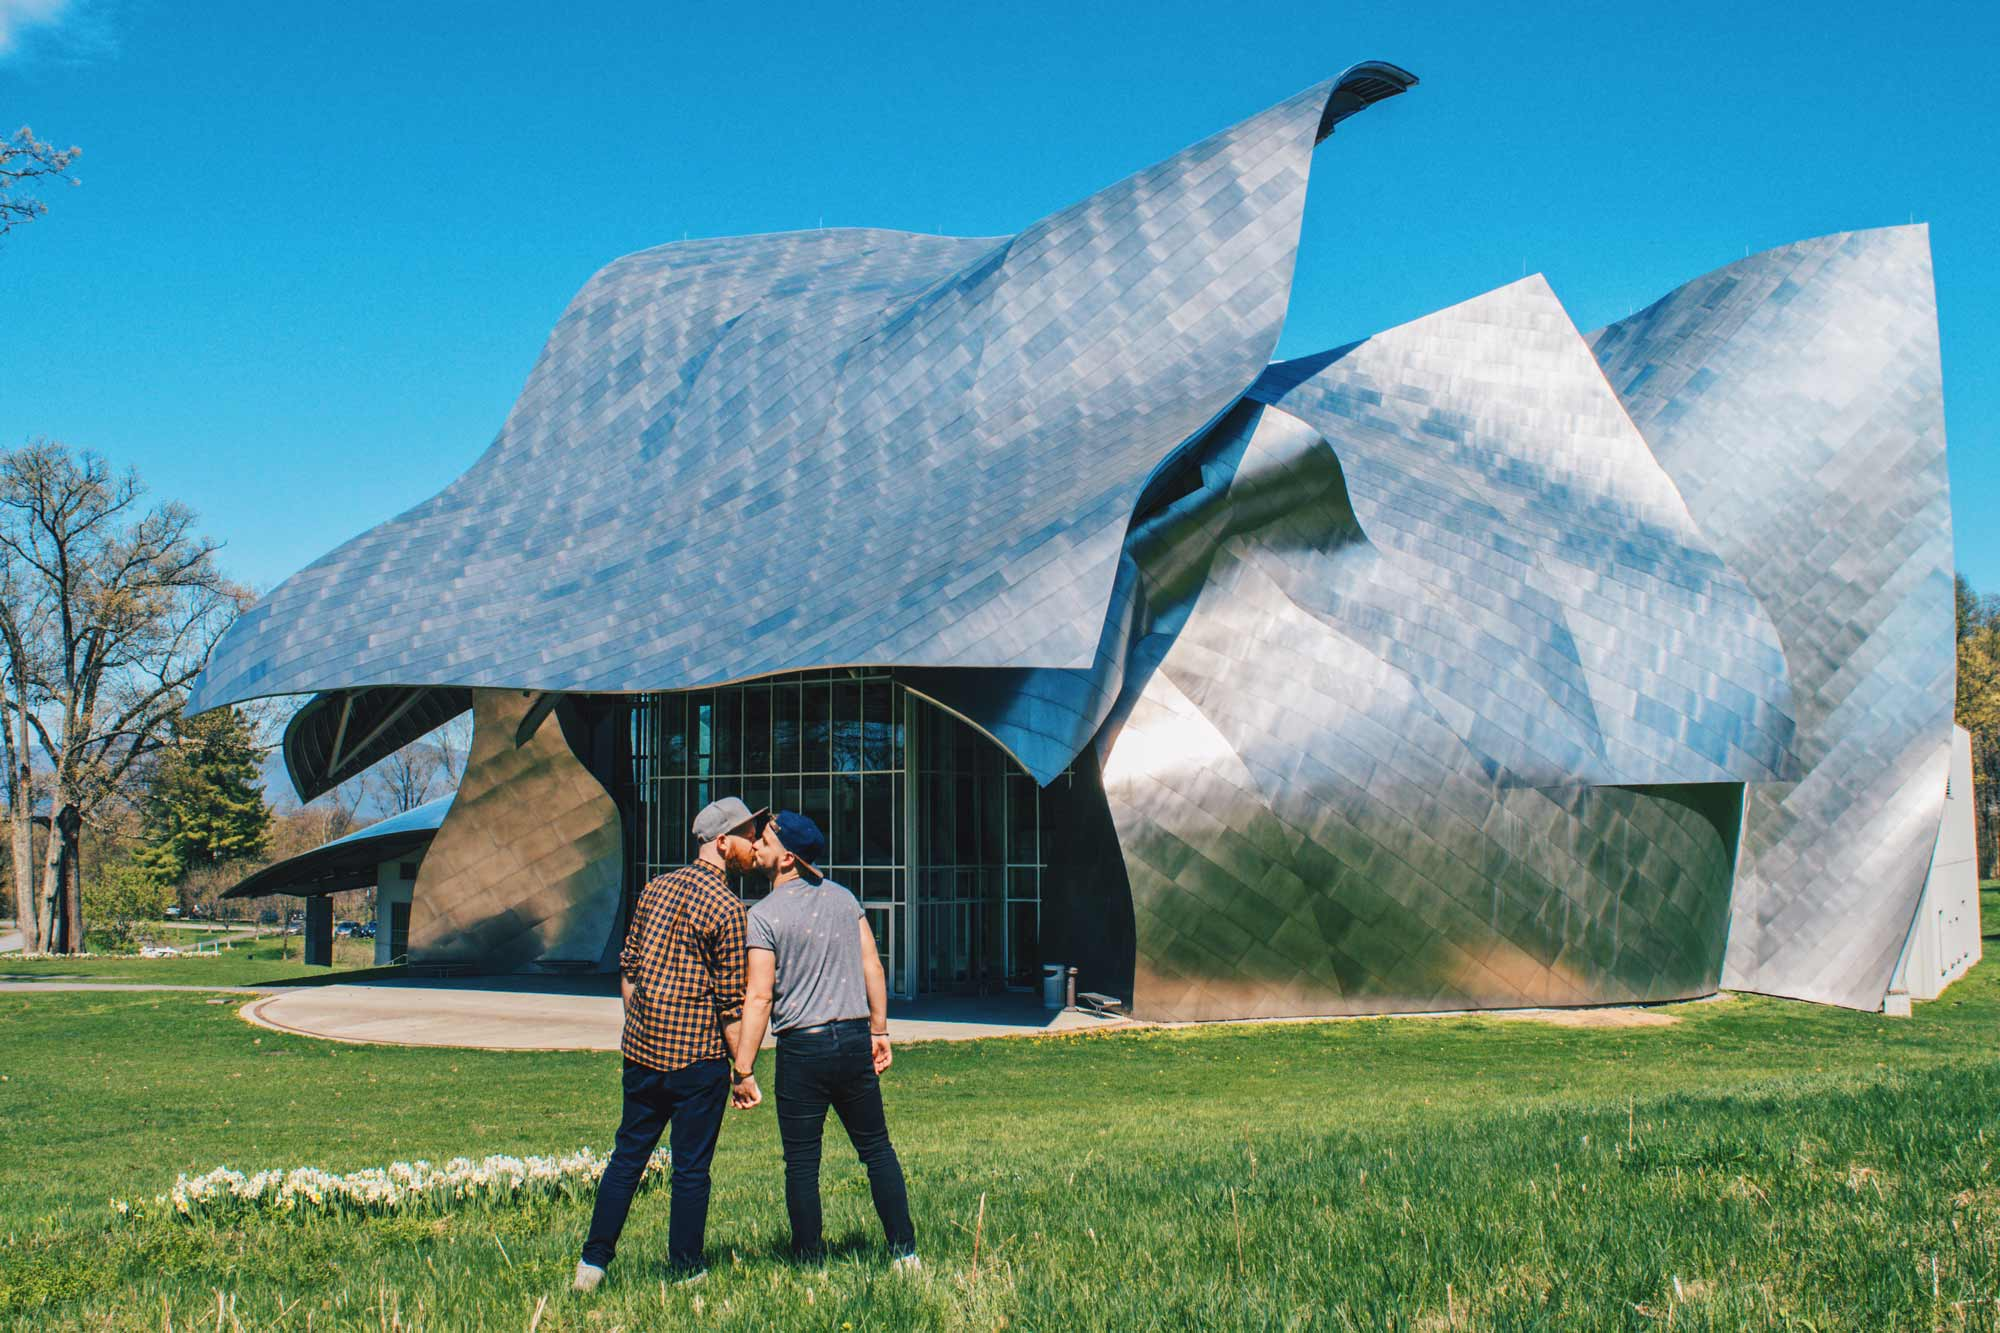 Gay Reise Dutchess County Gay Travel Dutchess County Hand-in-hand in front of the The Richard B. Fisher Center for the Performing Arts at Bard College designed by architect Frank Gehry © Coupleofmen.com